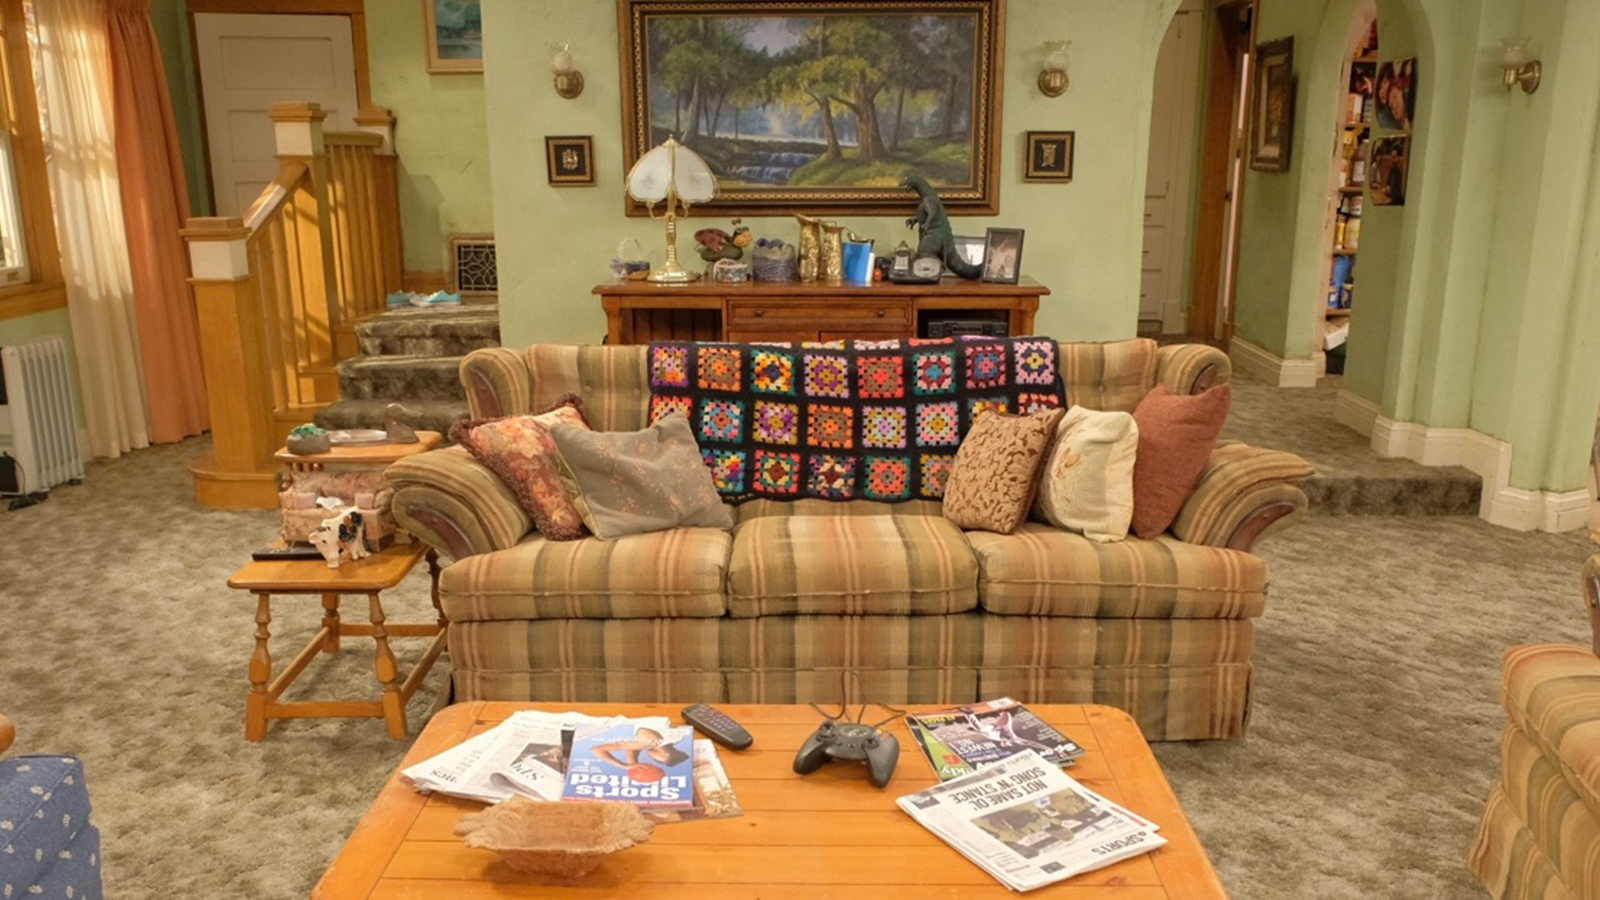 The Conners - Couch and main living room